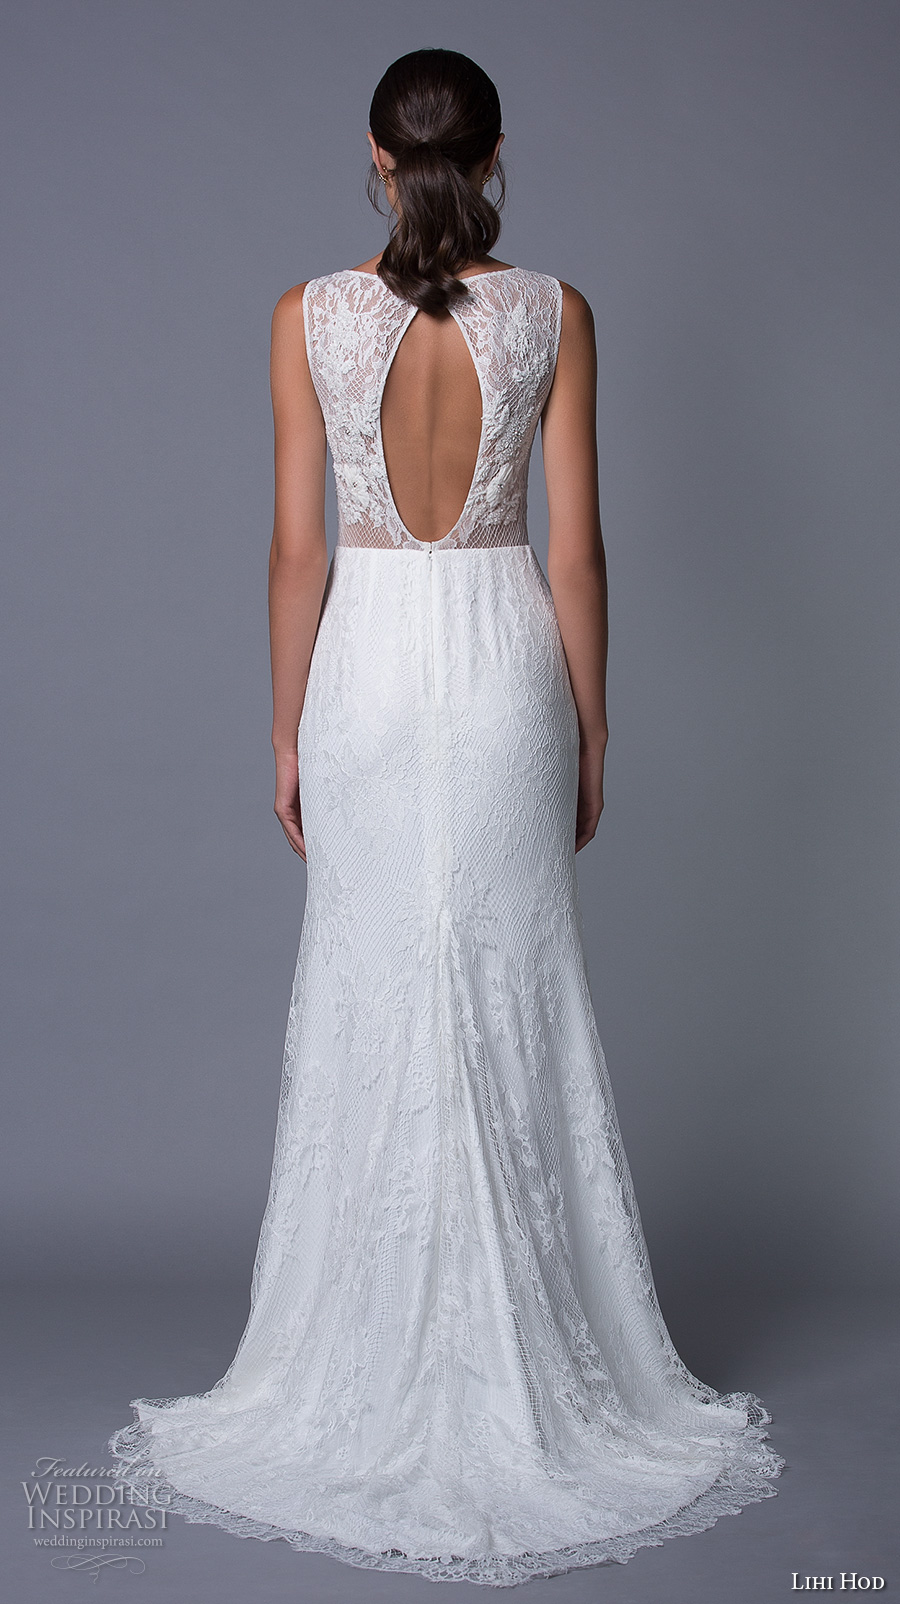 lihi hod 2017 bridal sleeveless bateau neckline heavily embellished bodice sexy elegant a line wedding dress keyhole back sweep train (isabel) bv